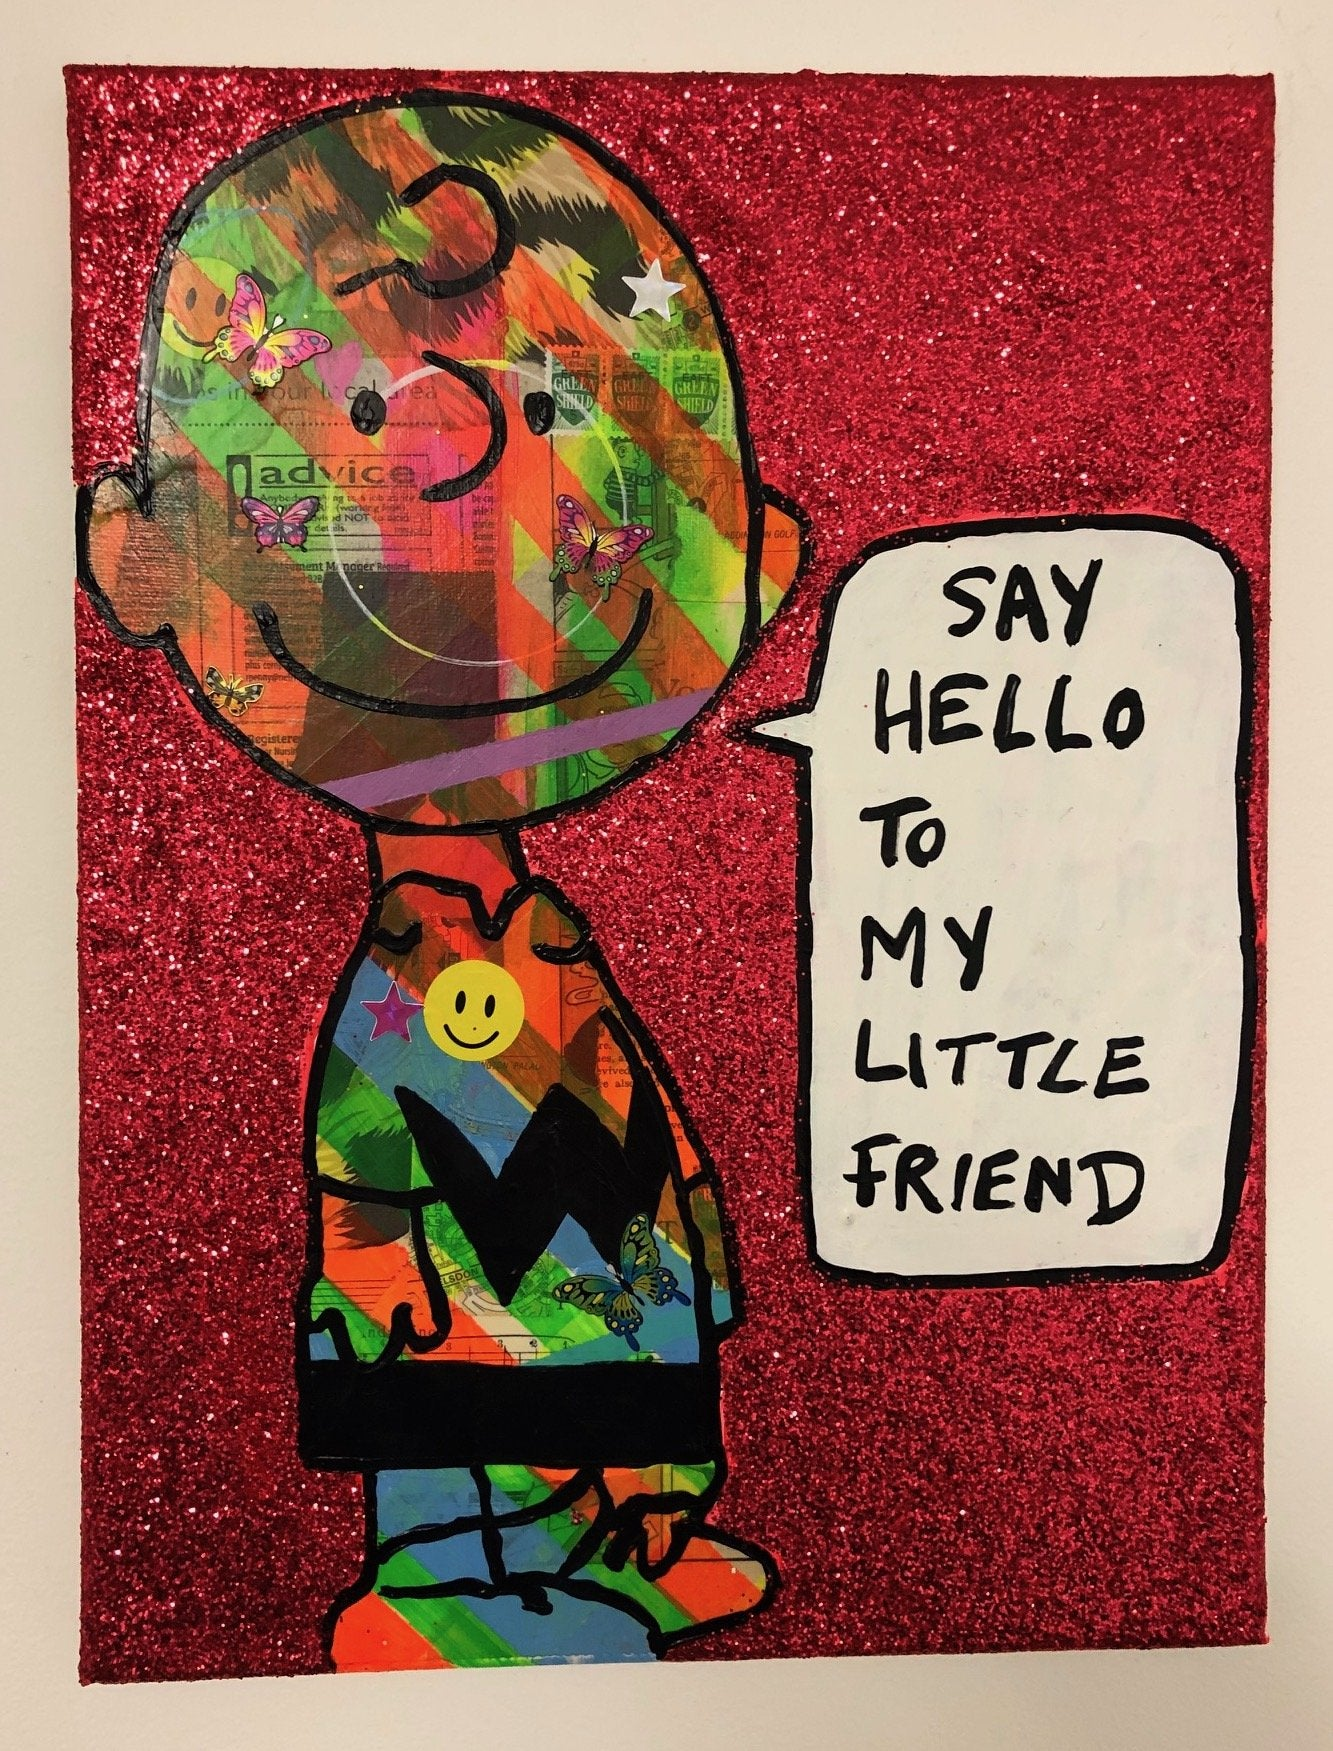 Say hello to my little friend by Barrie J Davies 2019 , mixed media on canvas, unframed, 30cm x 40cm. Barrie J Davies is an Artist - Pop Art and Street art inspired Artist based in Brighton England UK - Pop Art Paintings, Street Art Prints & Editions available.